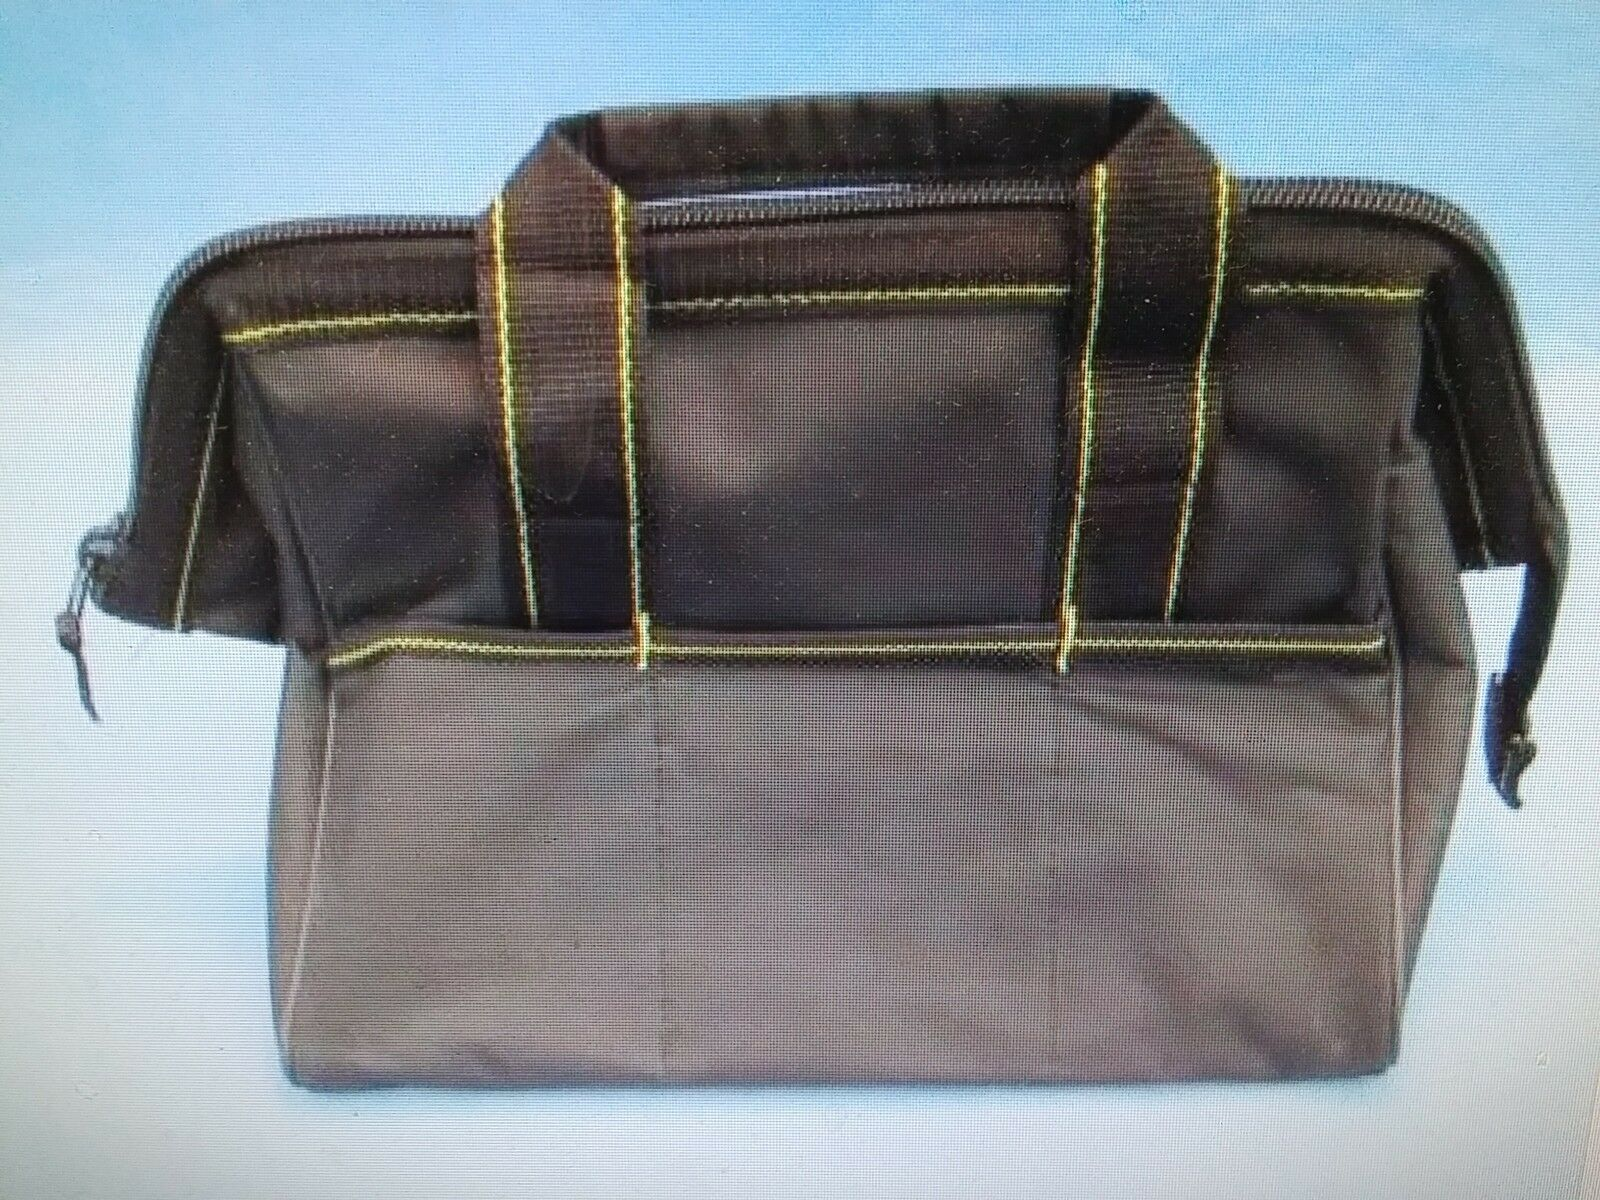 Harbor Freight Tools Canvas Riggers Bag 1 by Voyager